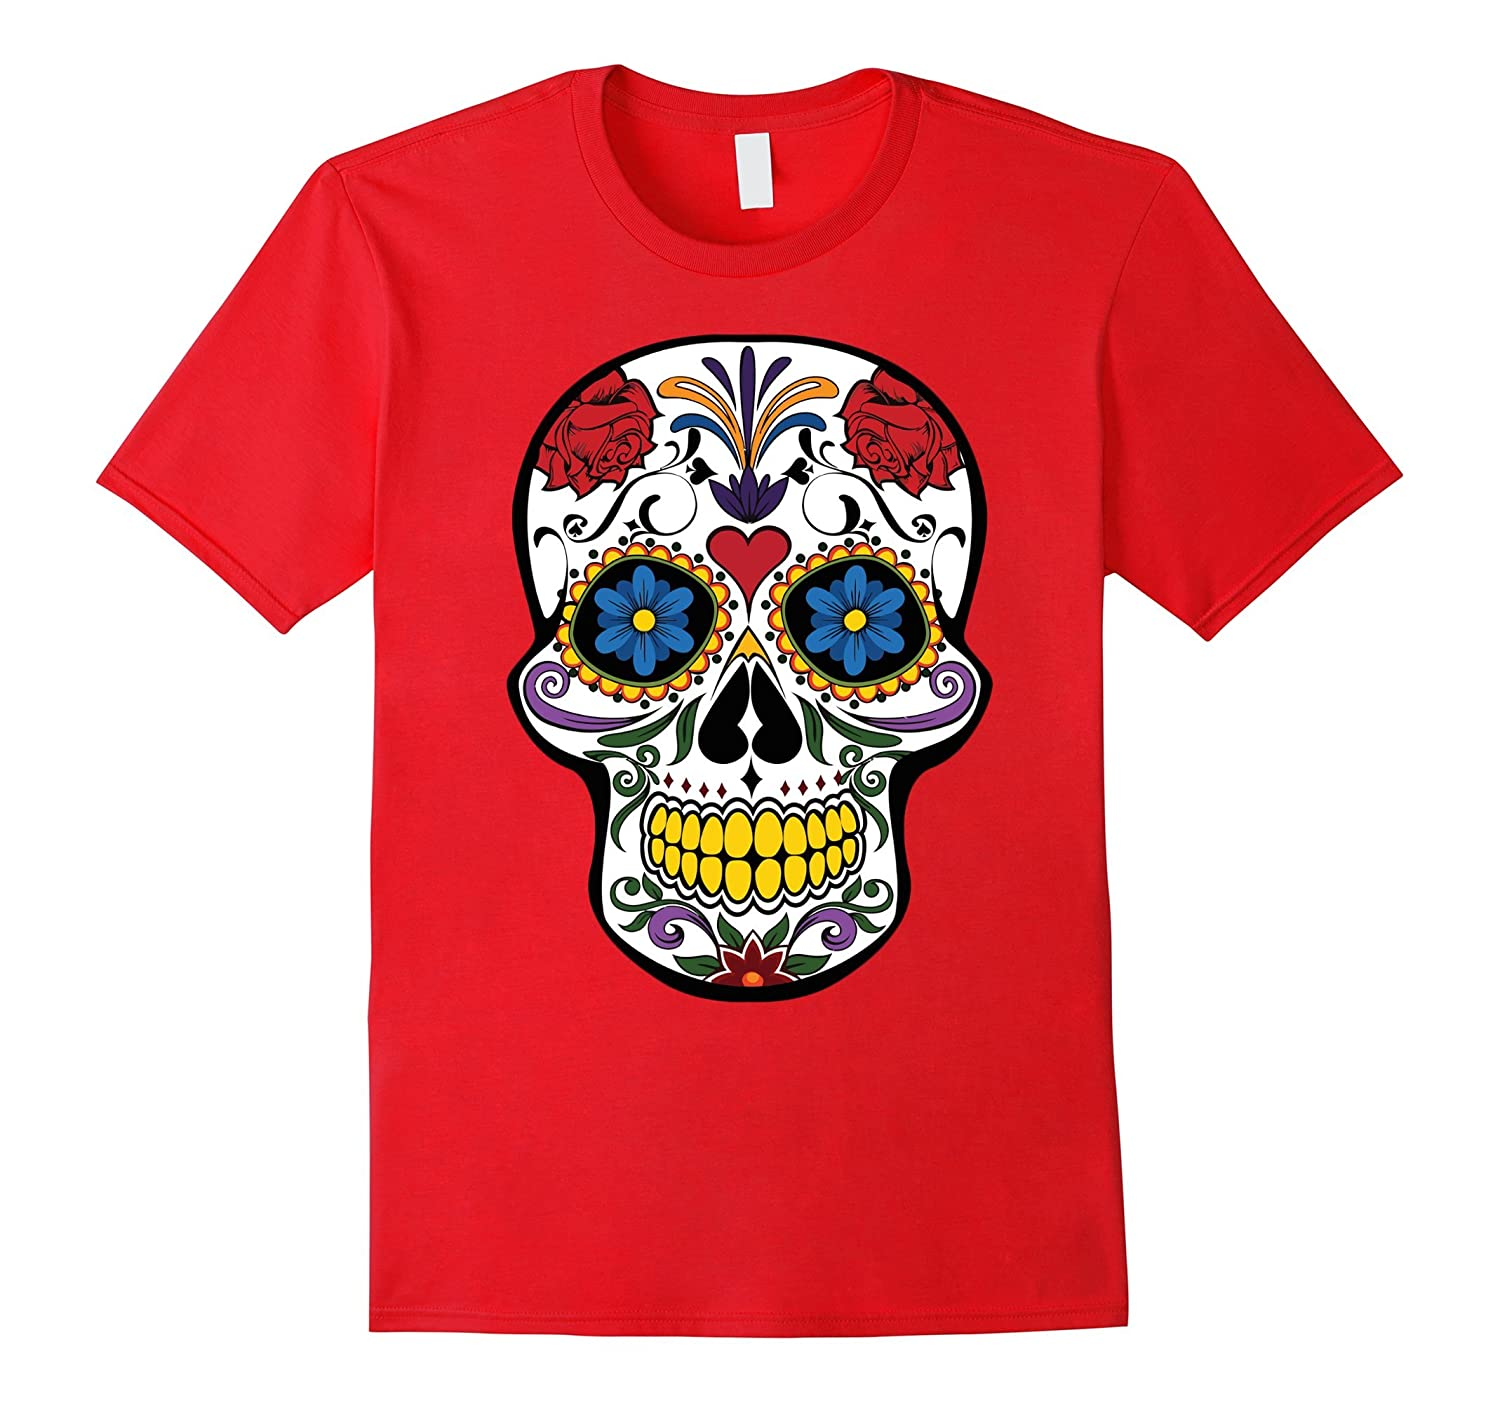 HALLOWEEN Large Fashion Floral Skull T-shirt,Luxury Tee-CL